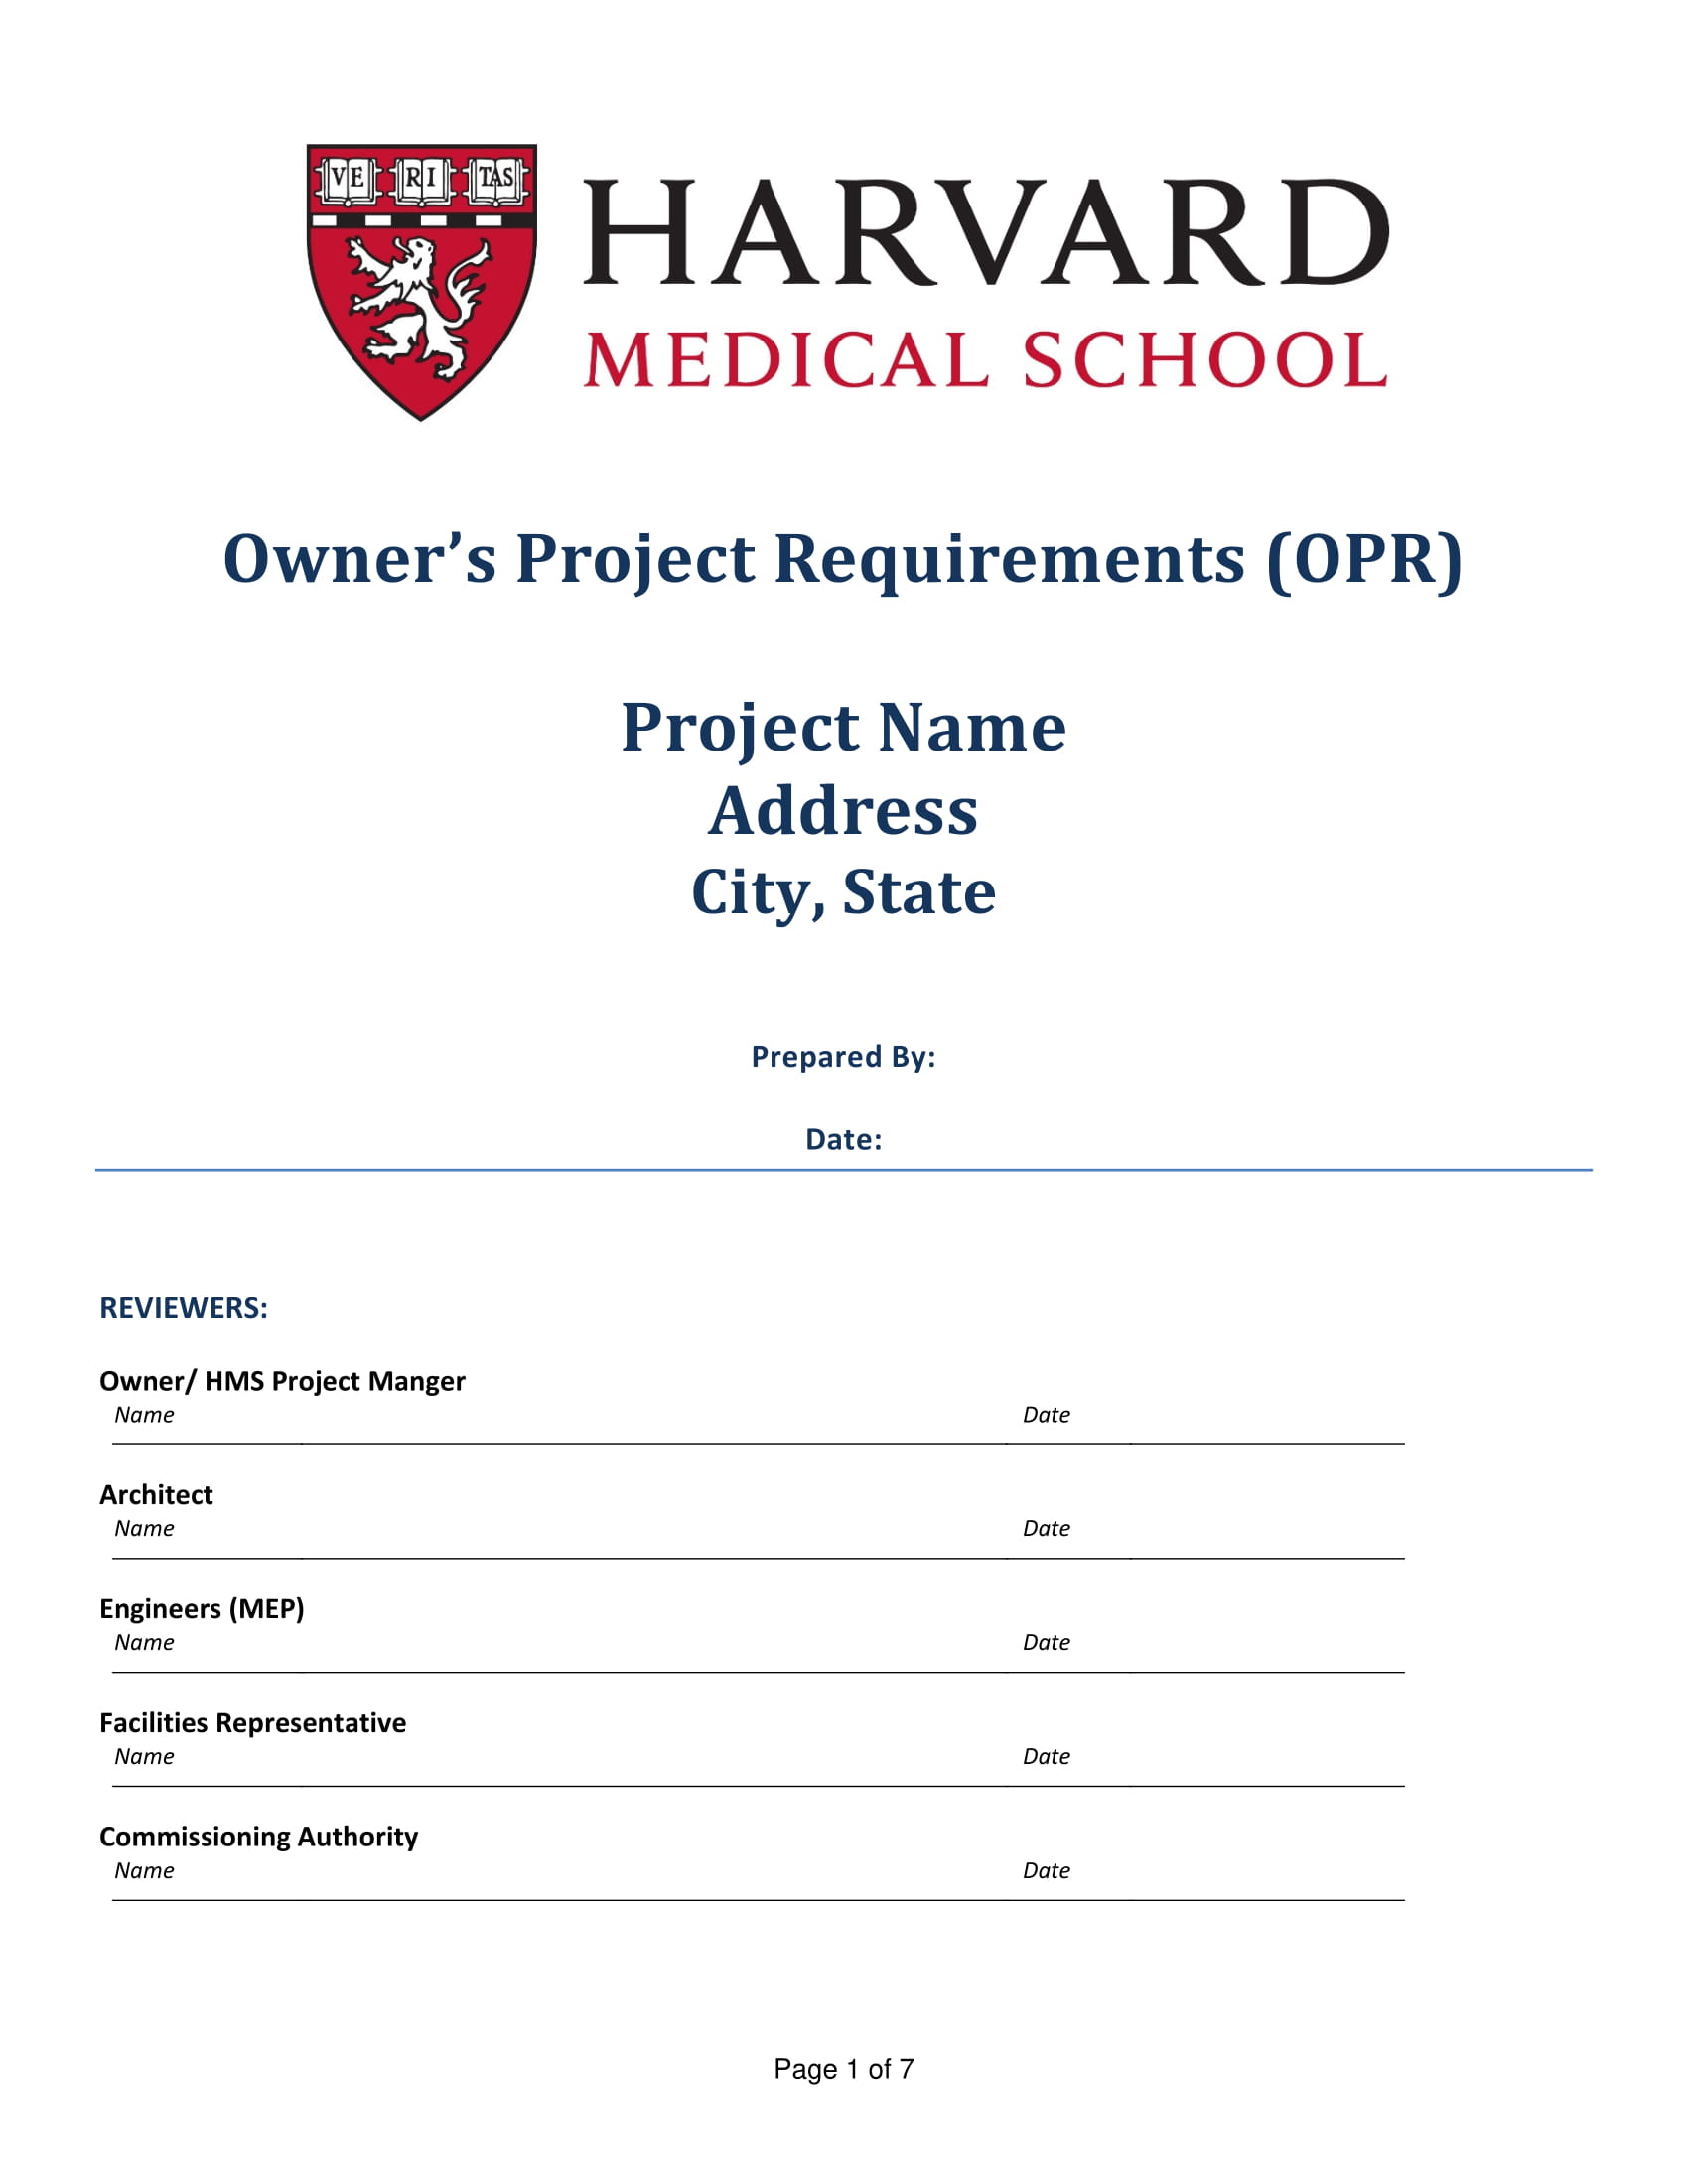 example of owners project requirement checklist